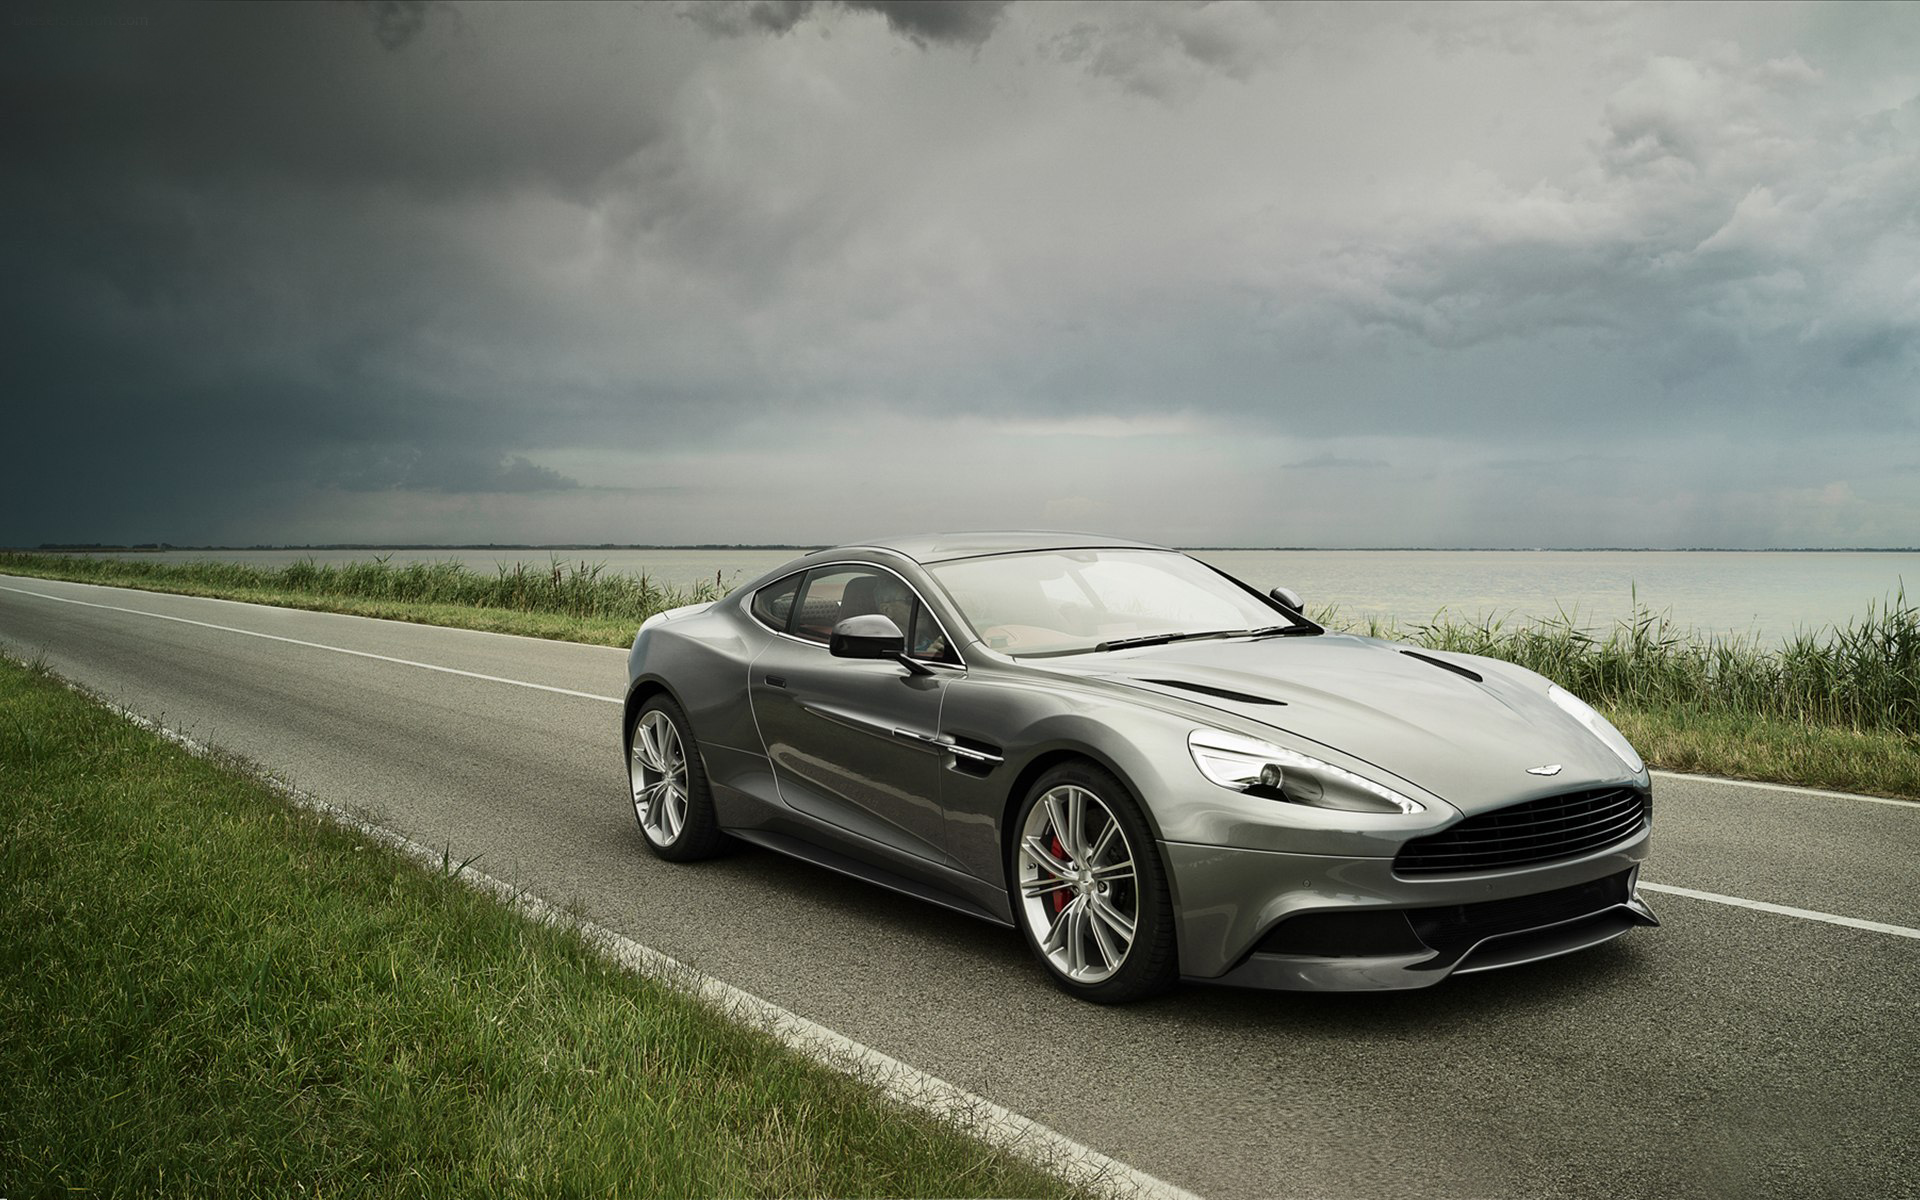 2013 aston martin vanquish 3 wallpaper hd car wallpapers. Cars Review. Best American Auto & Cars Review